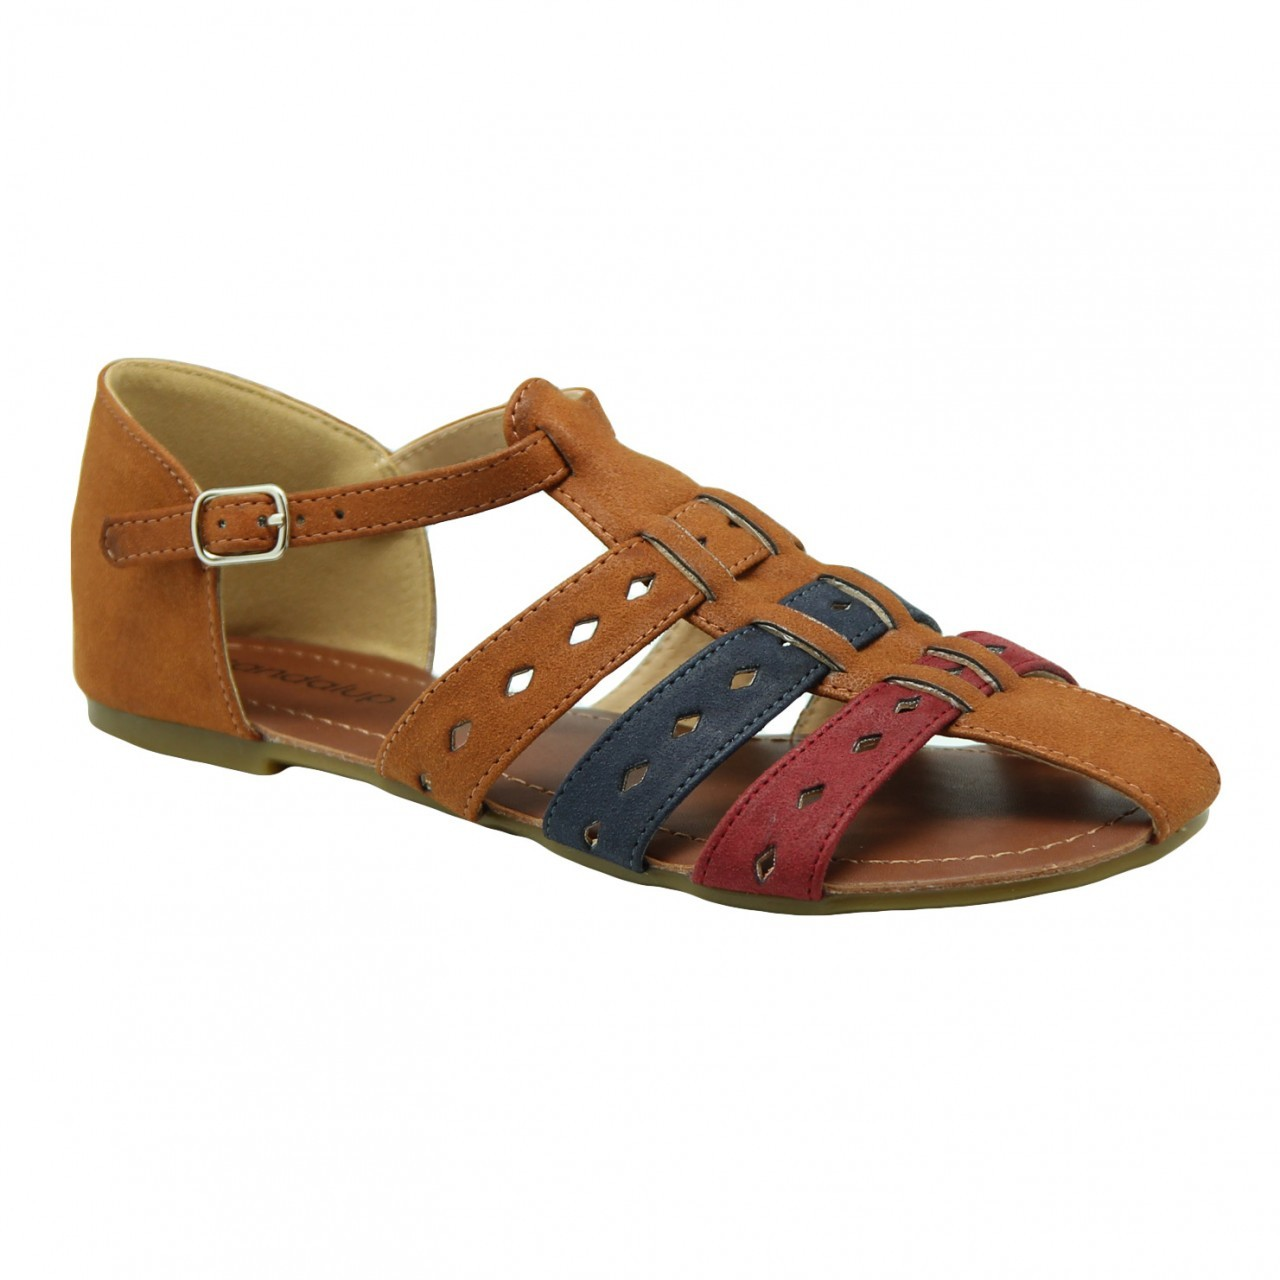 Five Tips for Wide Width Summer Sandal Shopping